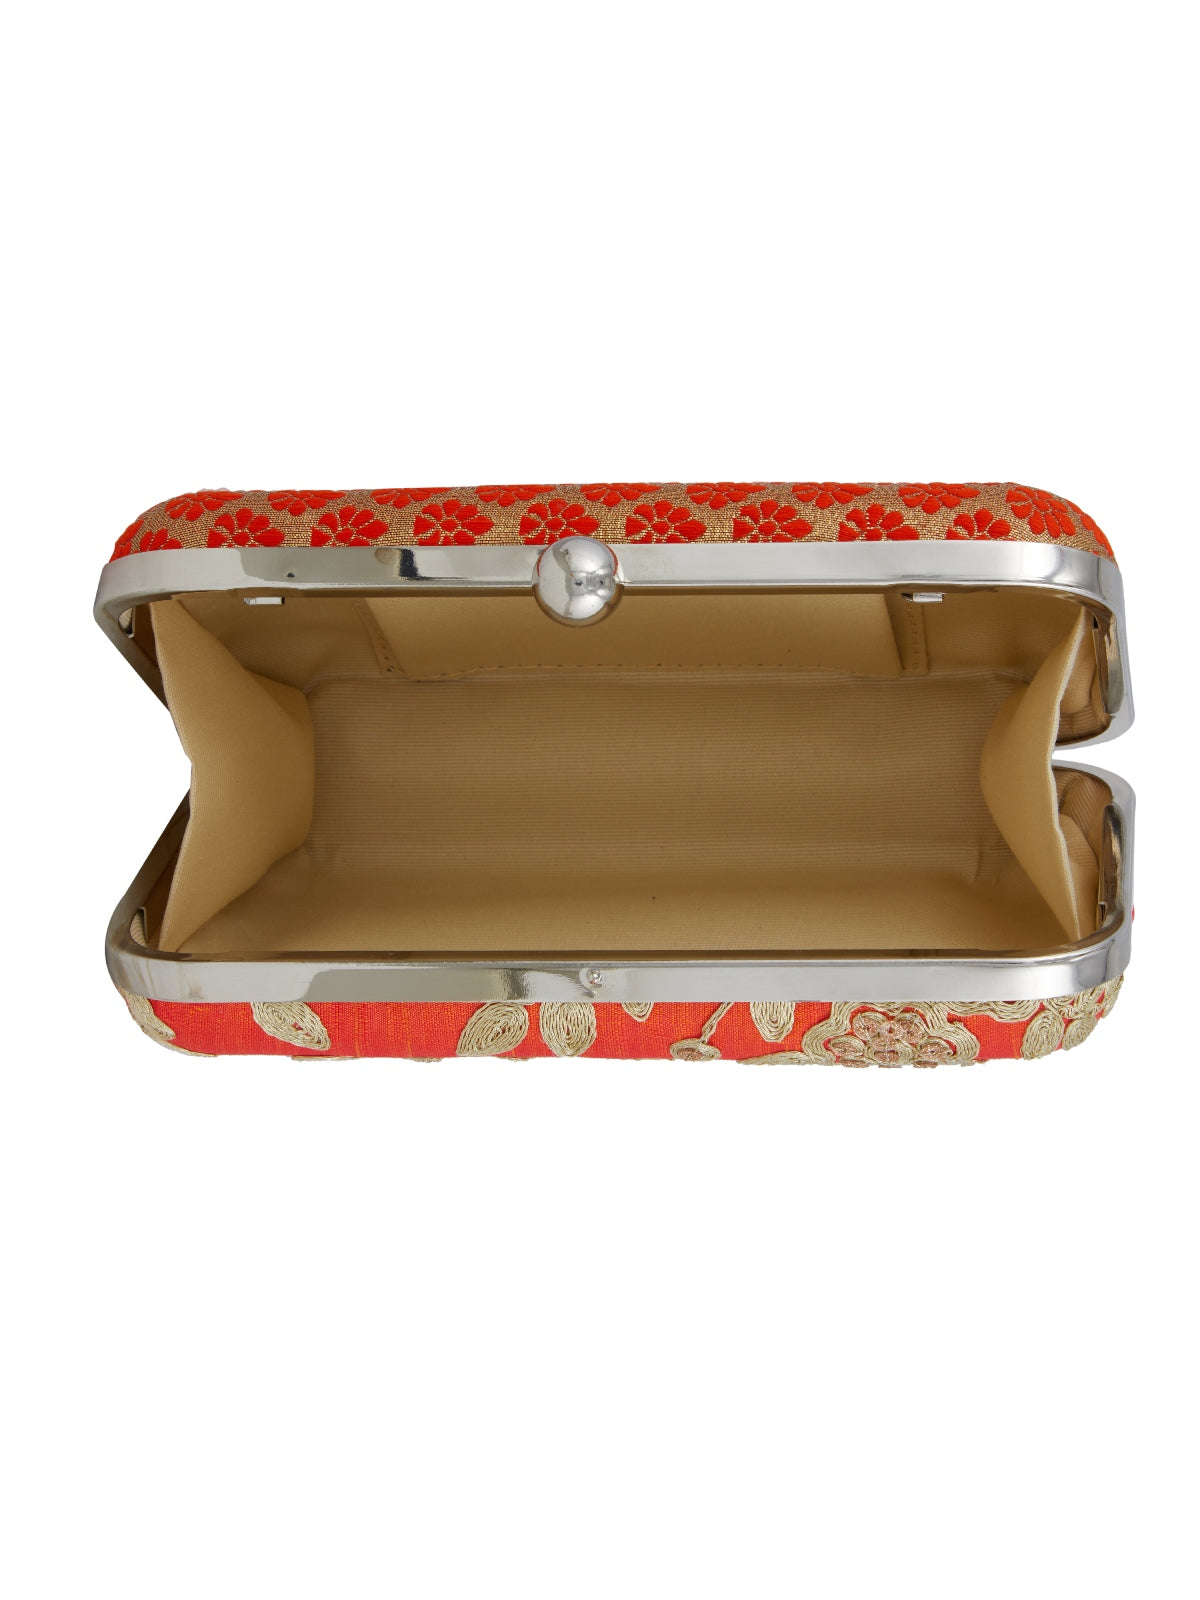 Keep your stuff handy while you are on the move with this orange coloured box clutch from the house of TARUSA. Made from silk fabric, this box clutch for women will be your companion for years to come. Unique and voguish, this box clutch will go well with your casual outfits.